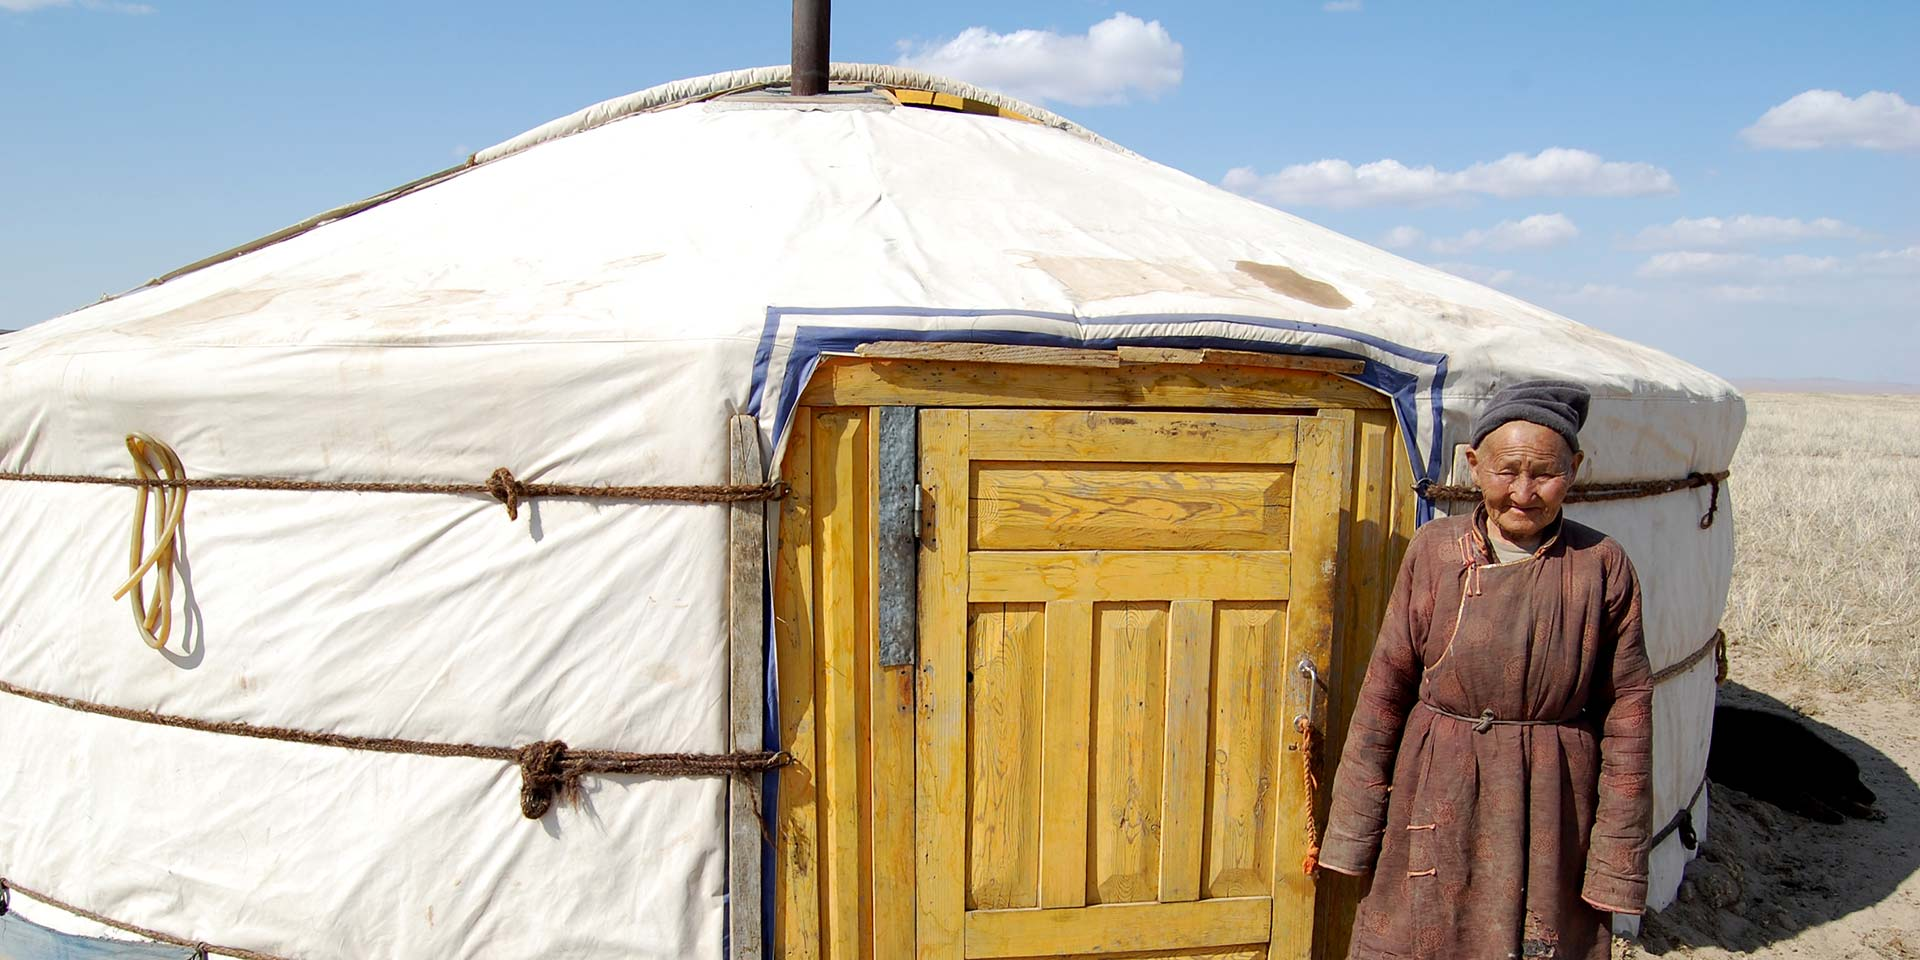 Adventures in the Mongolian Gobi